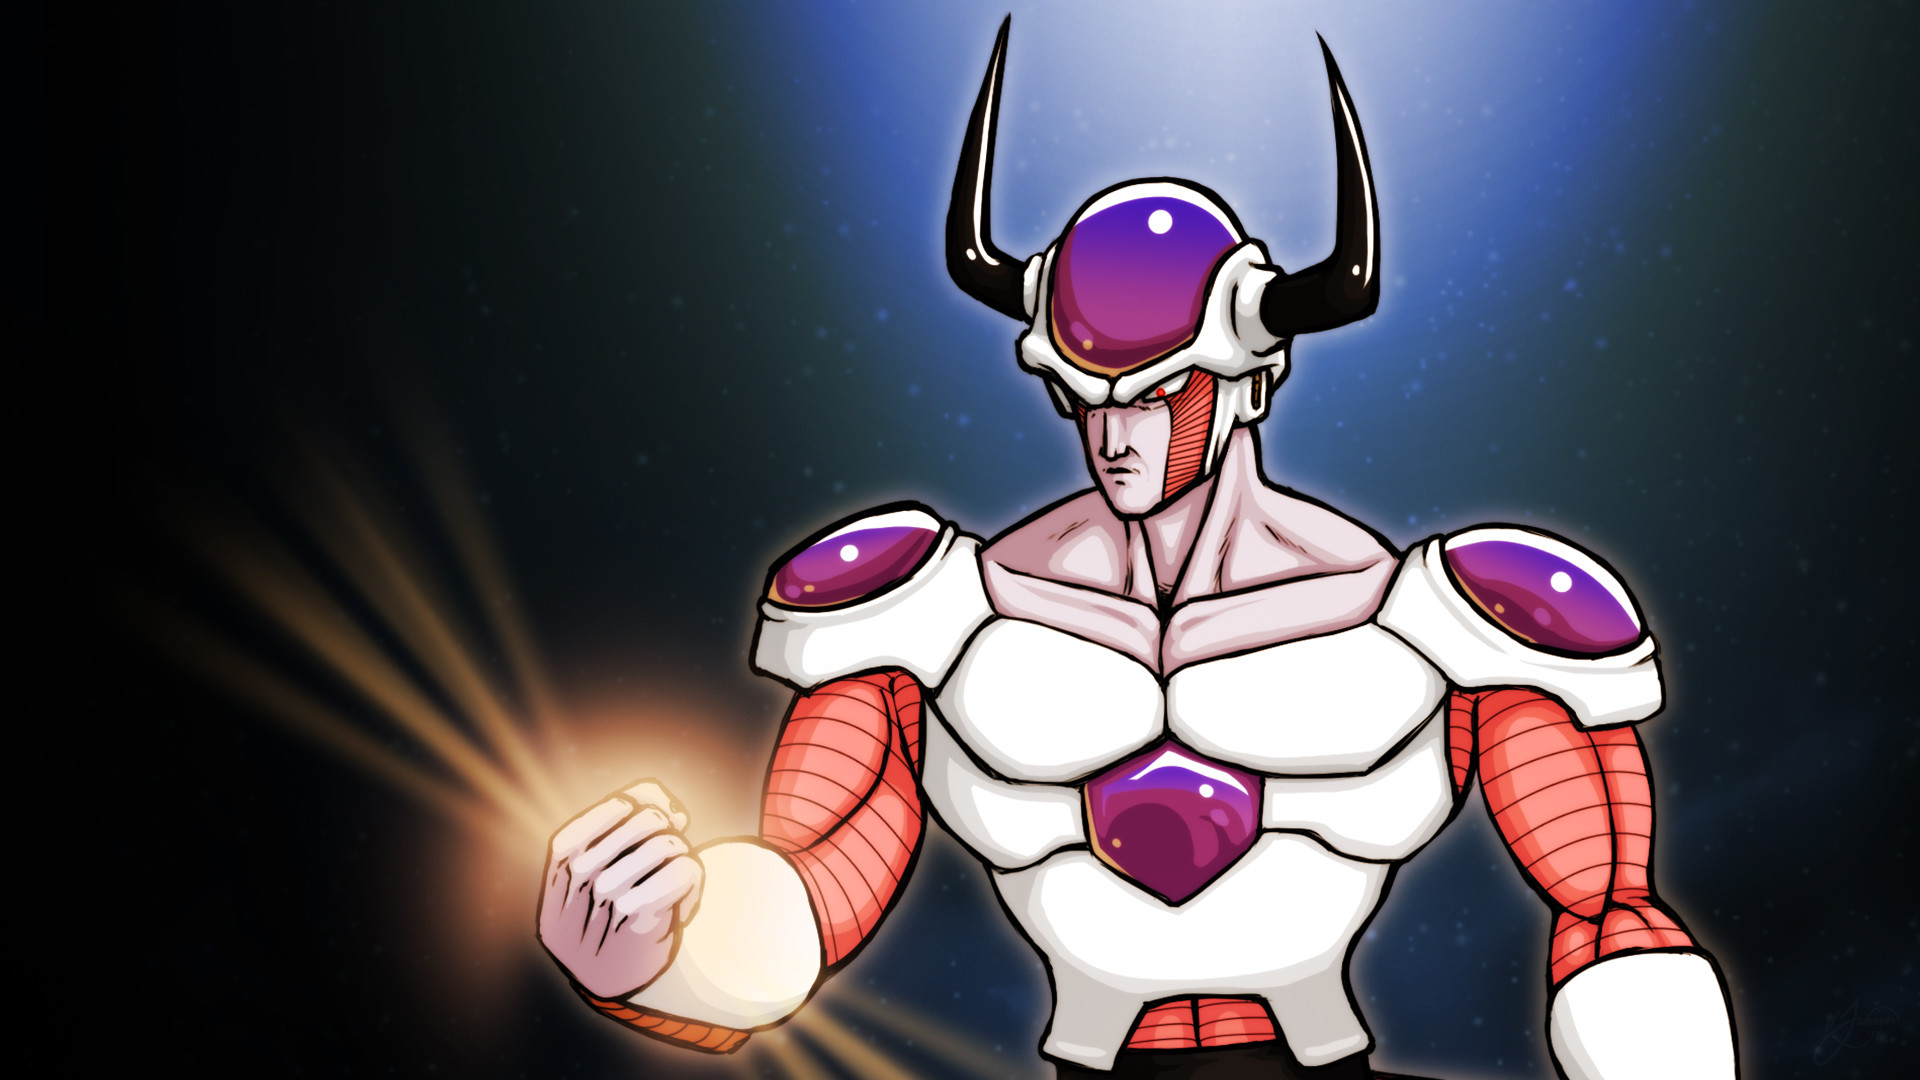 800×600 px; Frieza Wallpapers